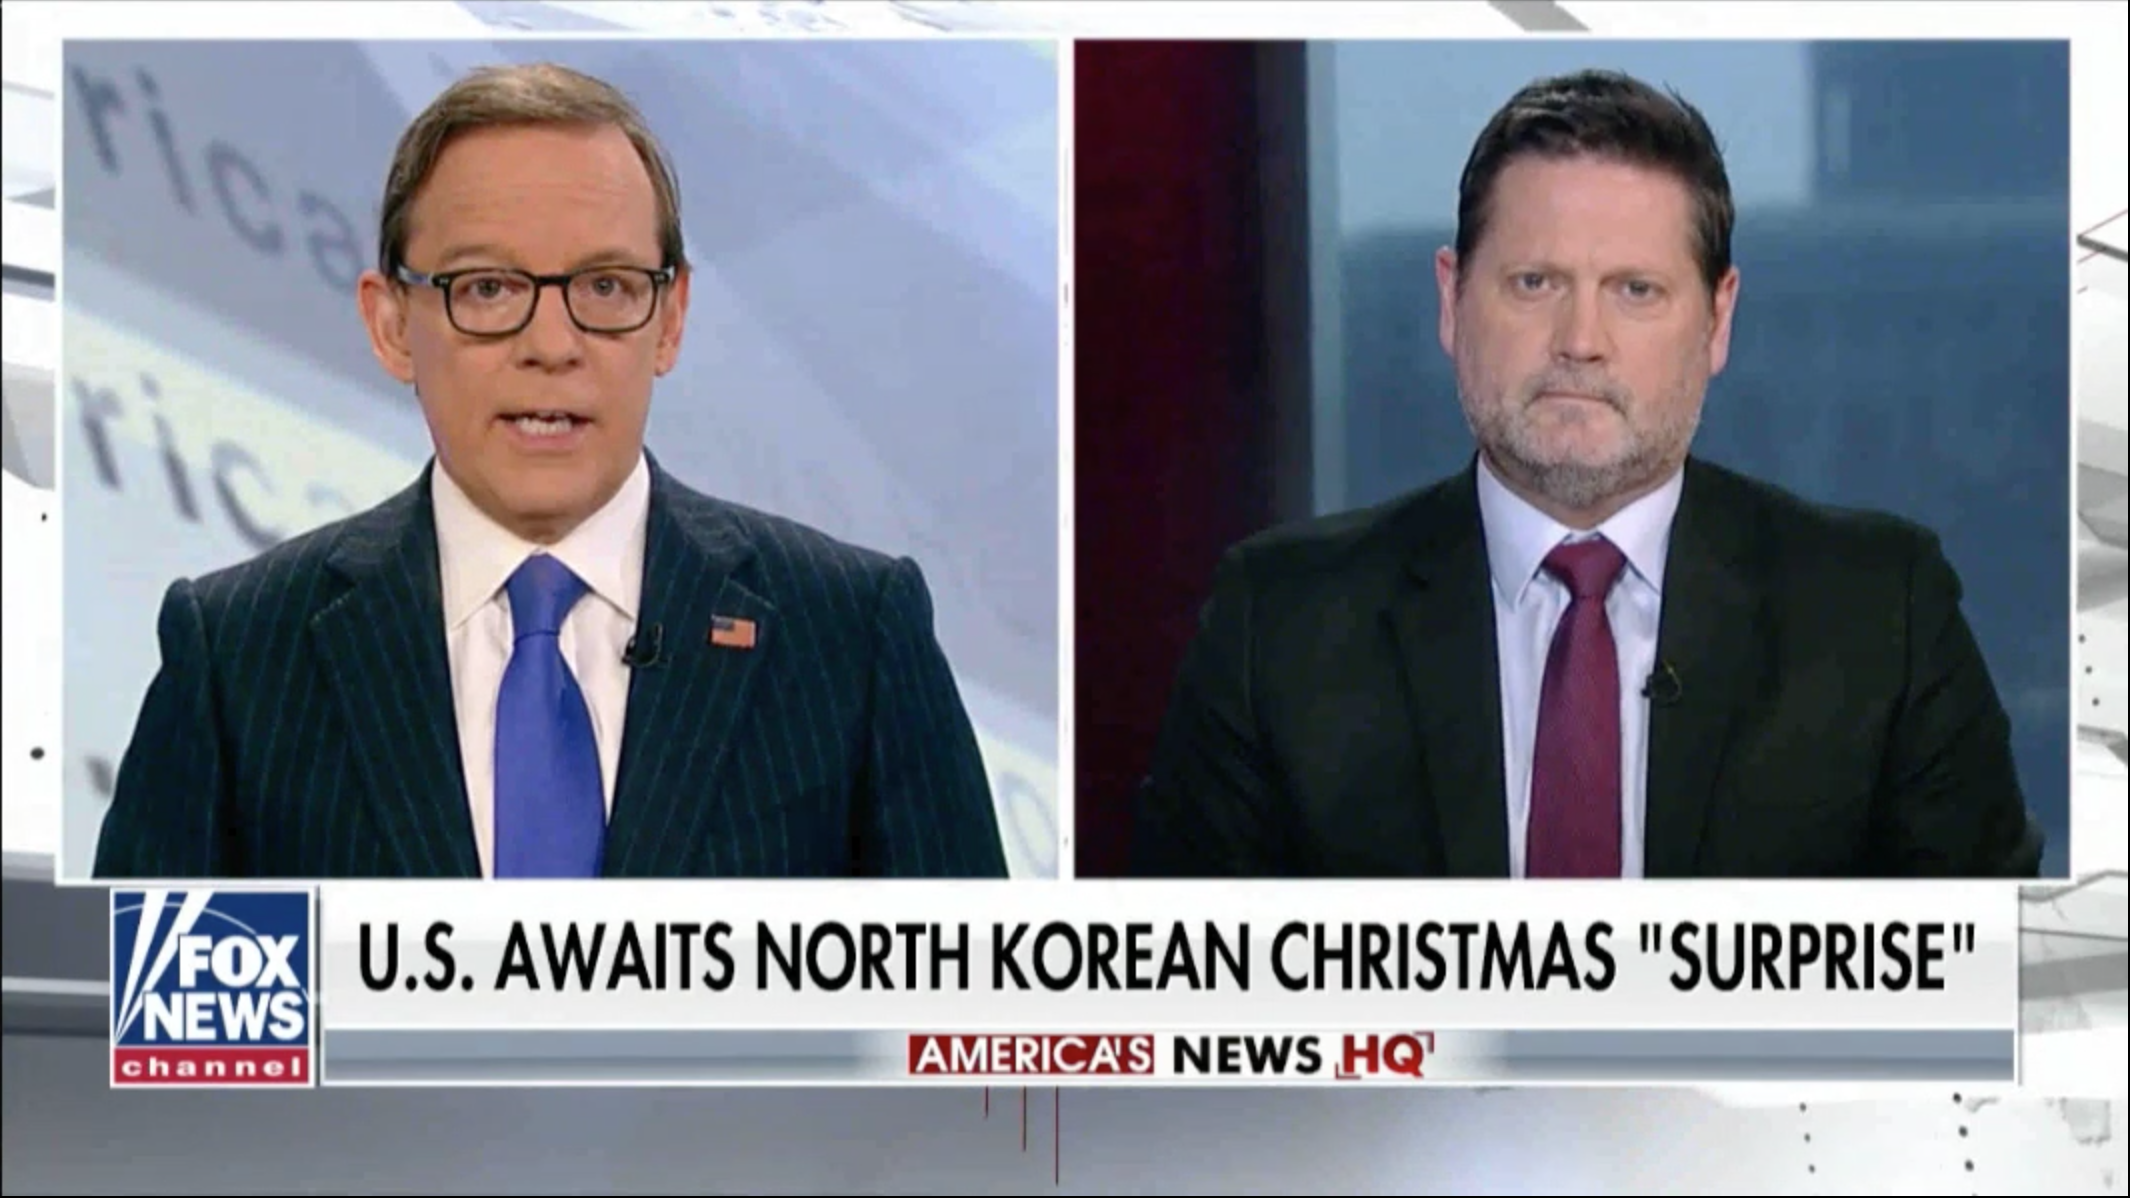 Michael Pregent discusses a possible North Korean missile launch on Christmas Day.